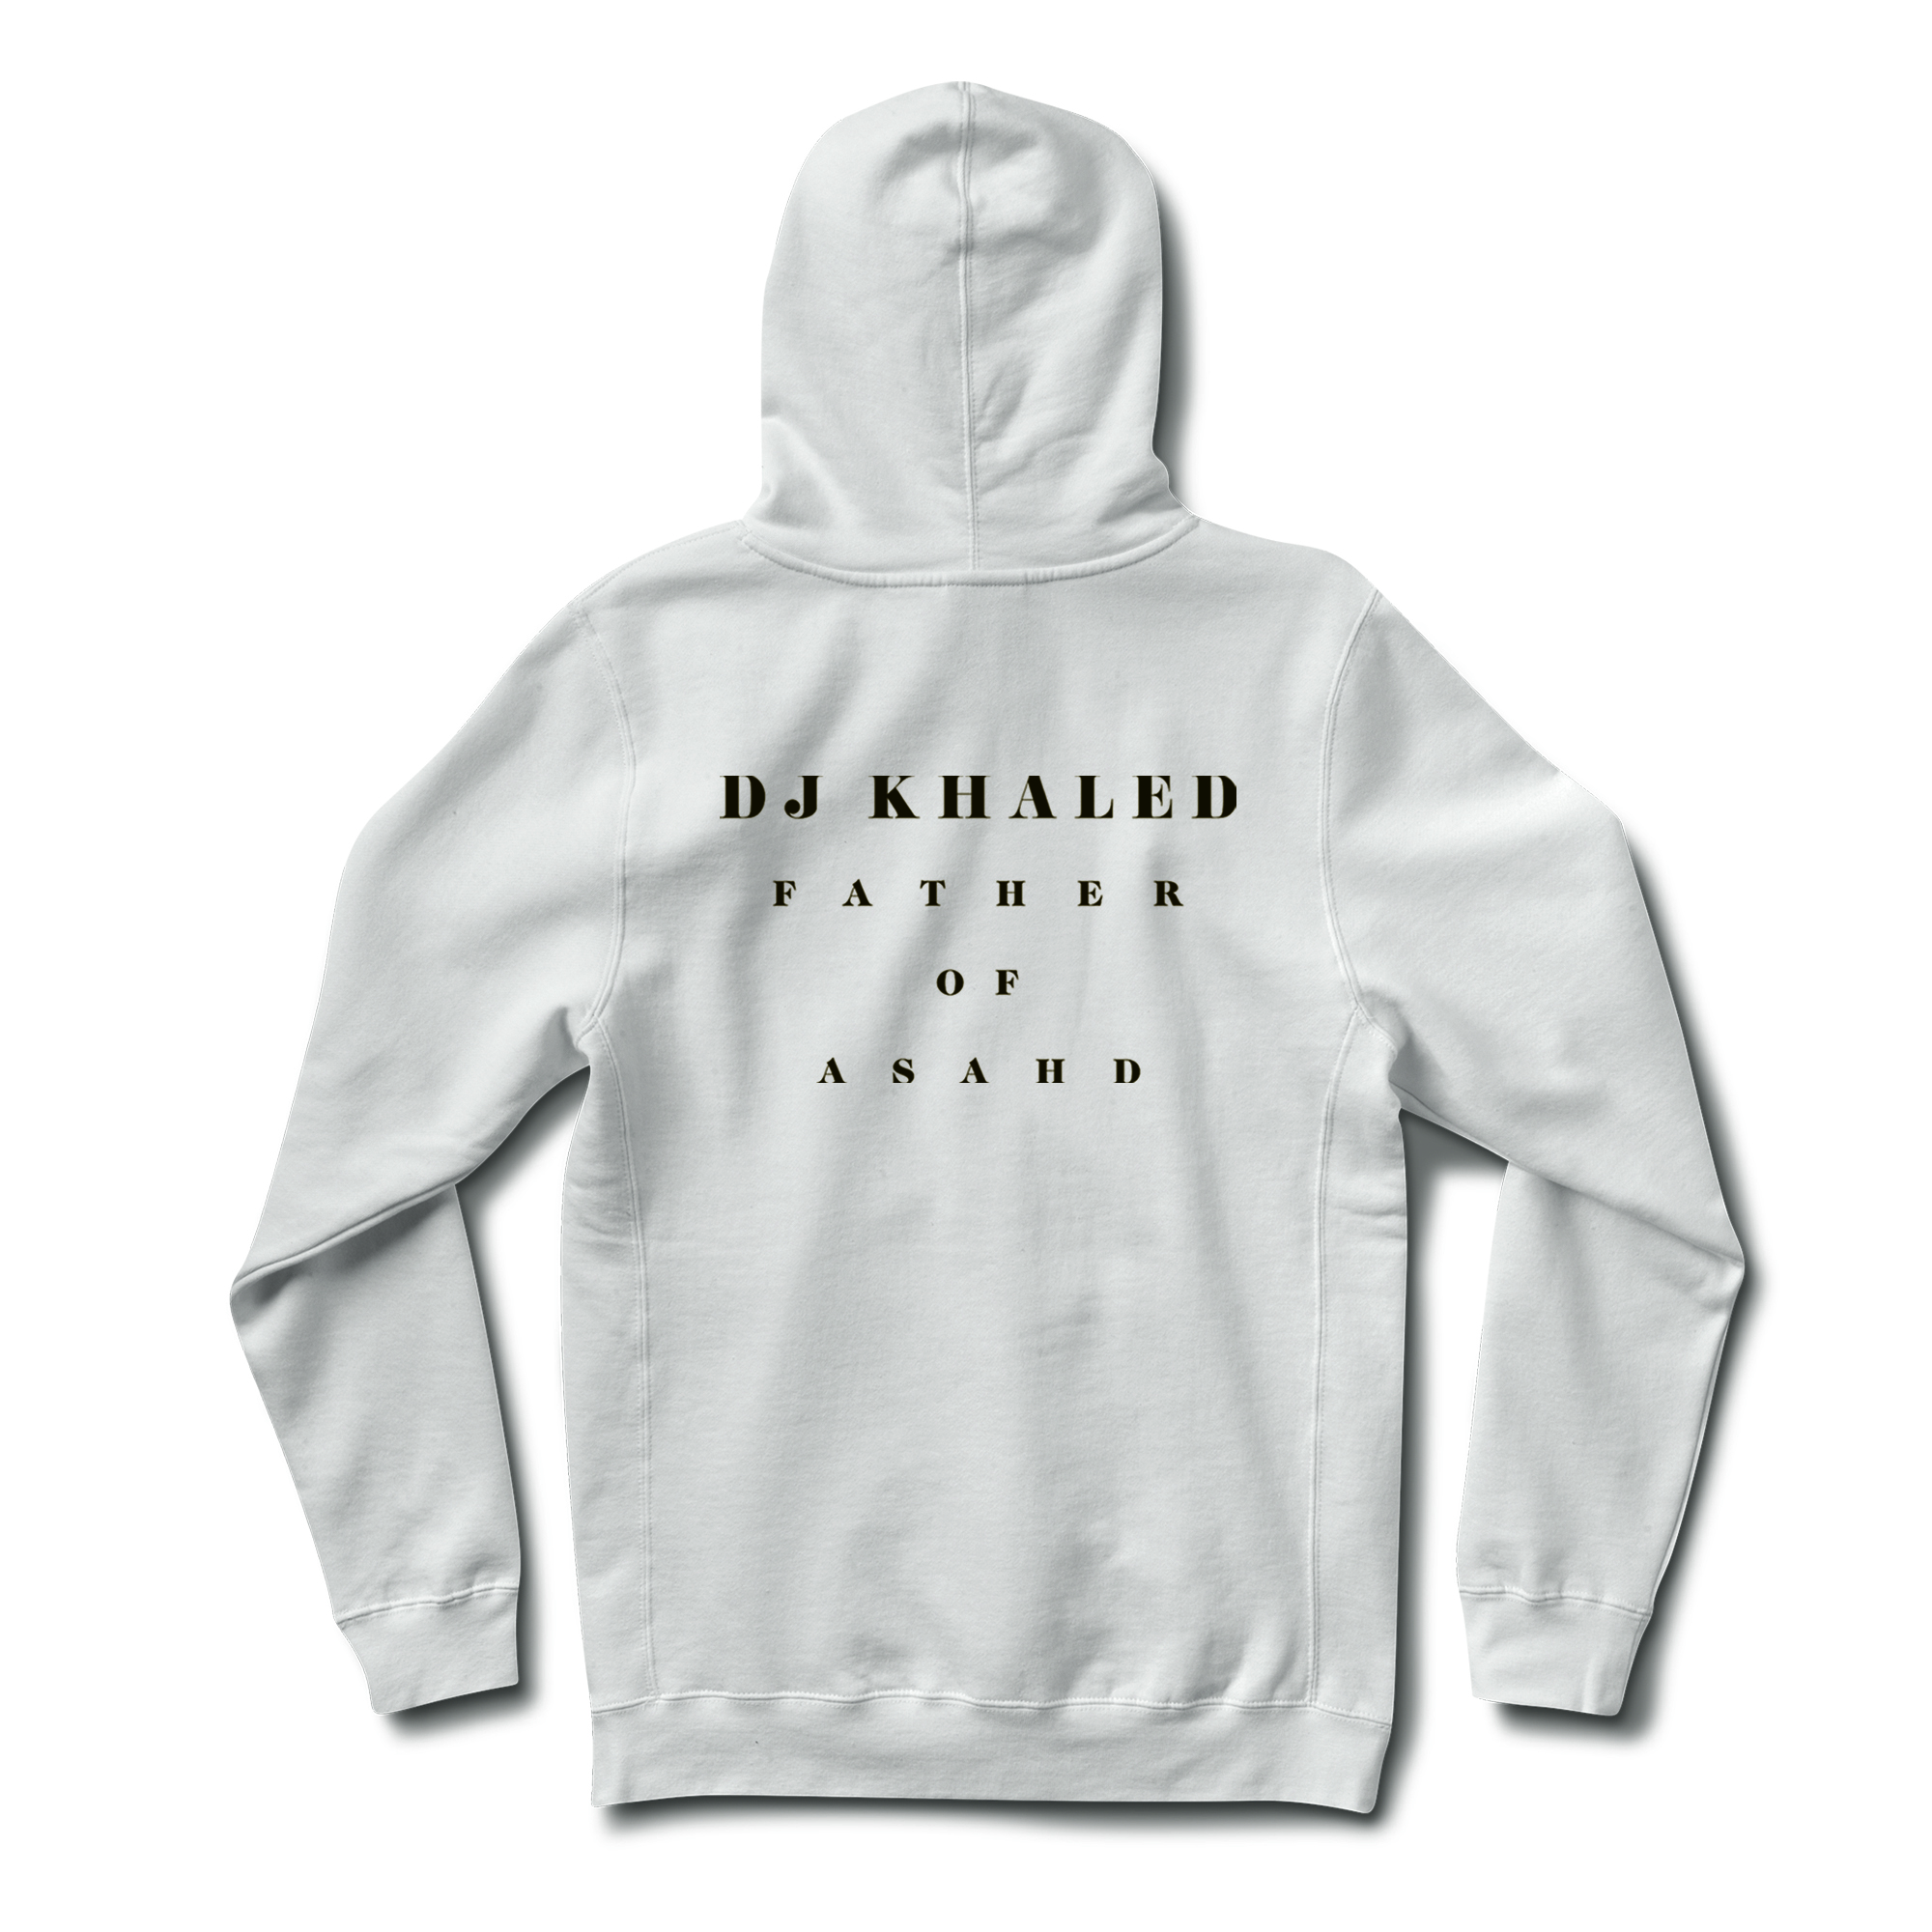 Father of Asahd x Diamond Supply Co. Hoodie + Father of Asahd Album Download